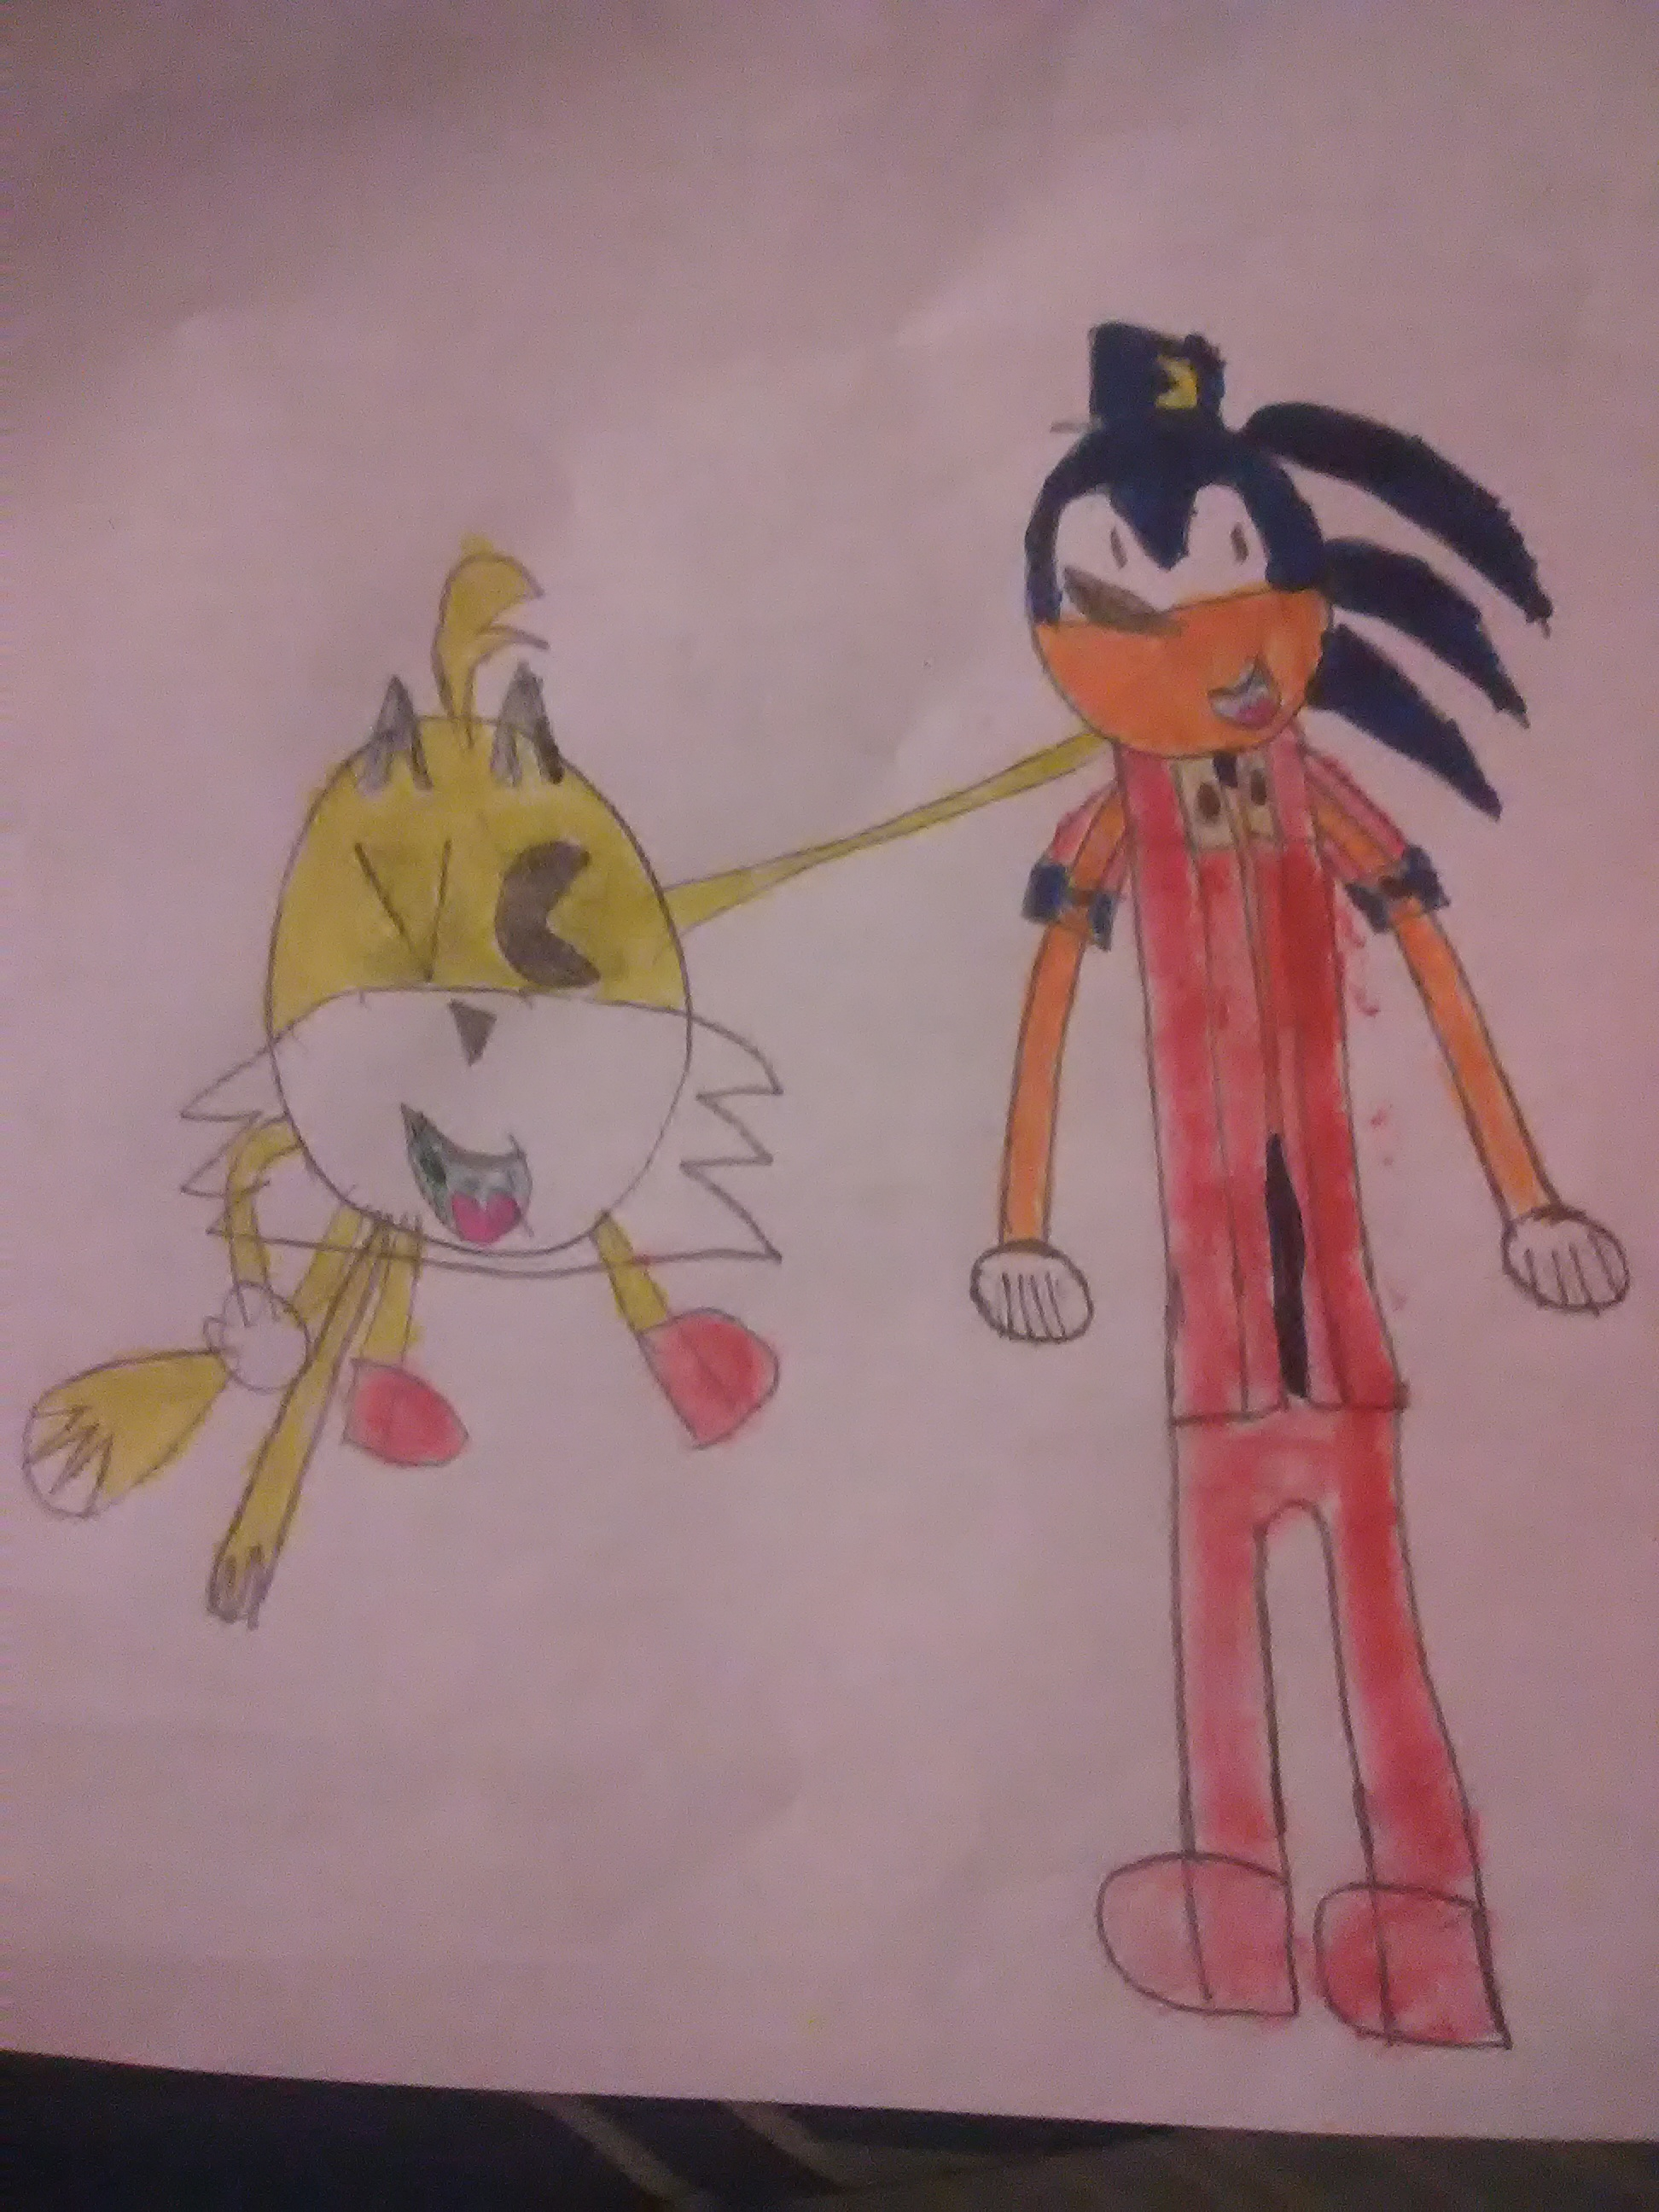 Tails as PAC-MAN and Sonic as Klonoa